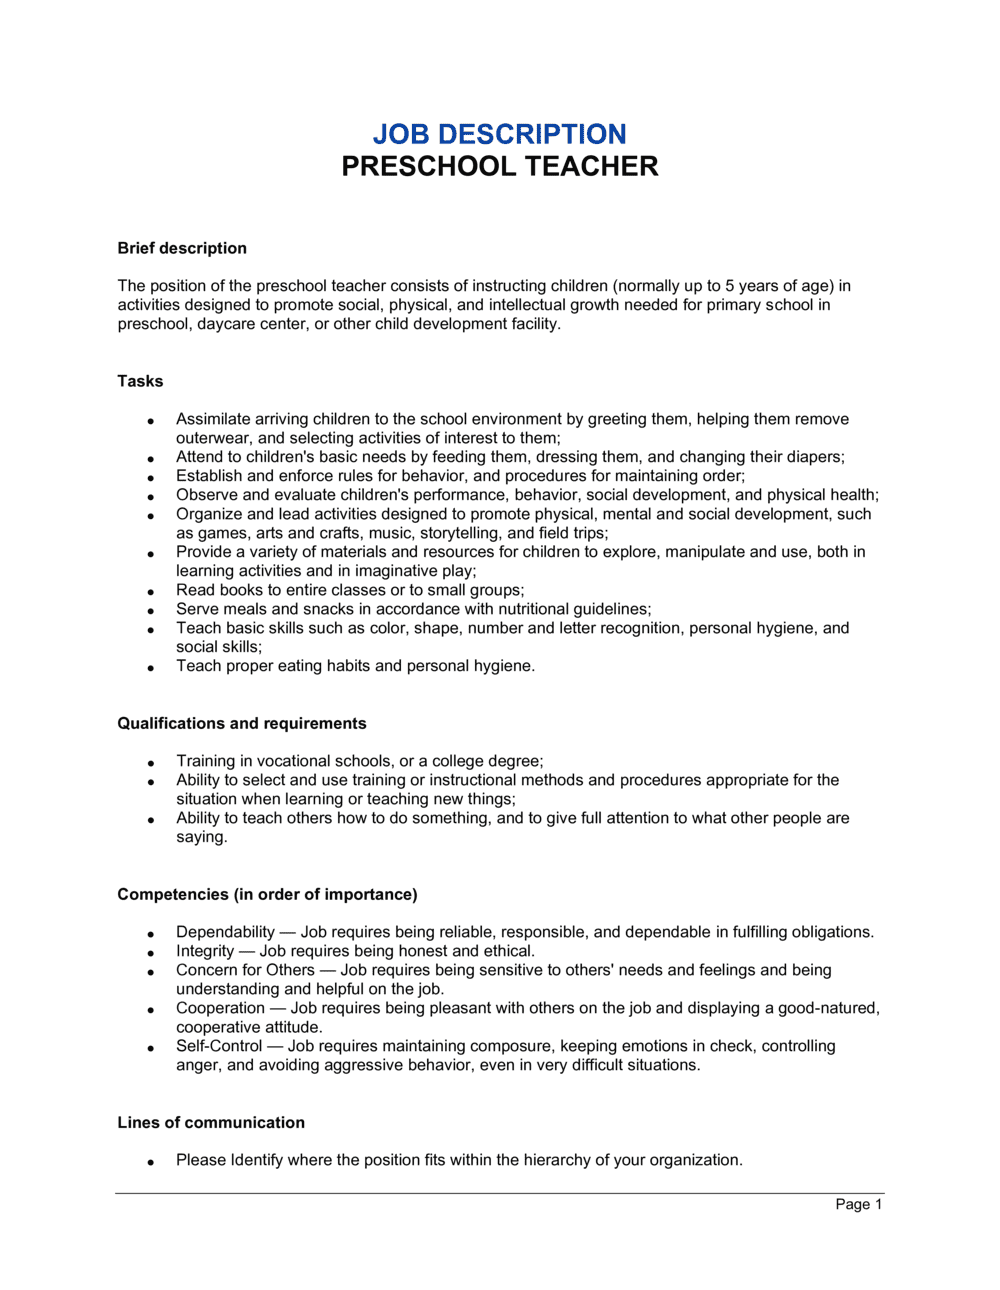 Business-in-a-Box's Preschool Teacher Job Description Template